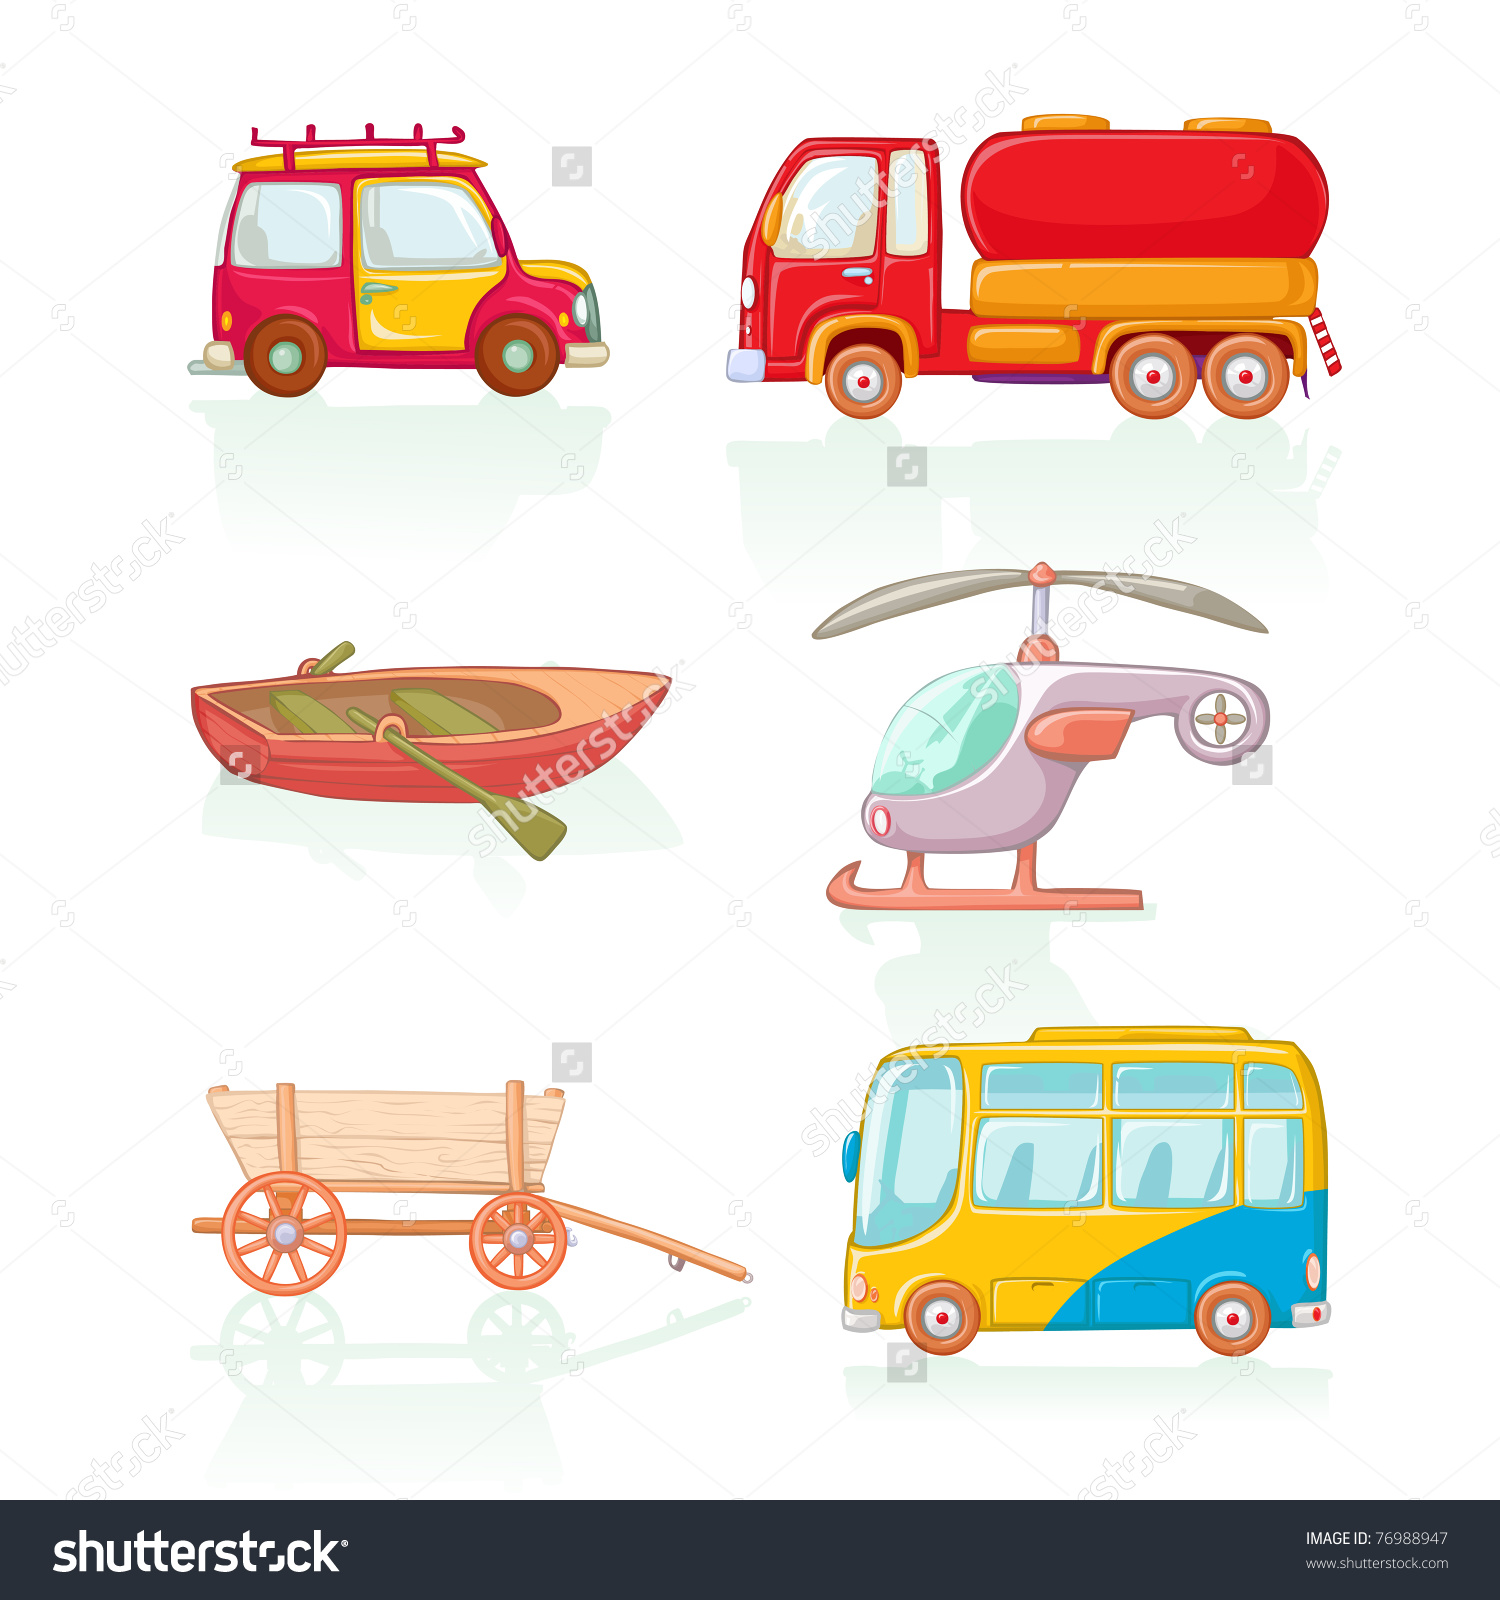 Vector Illustration Means Conveyance Cartoon Concept Stock Vector.